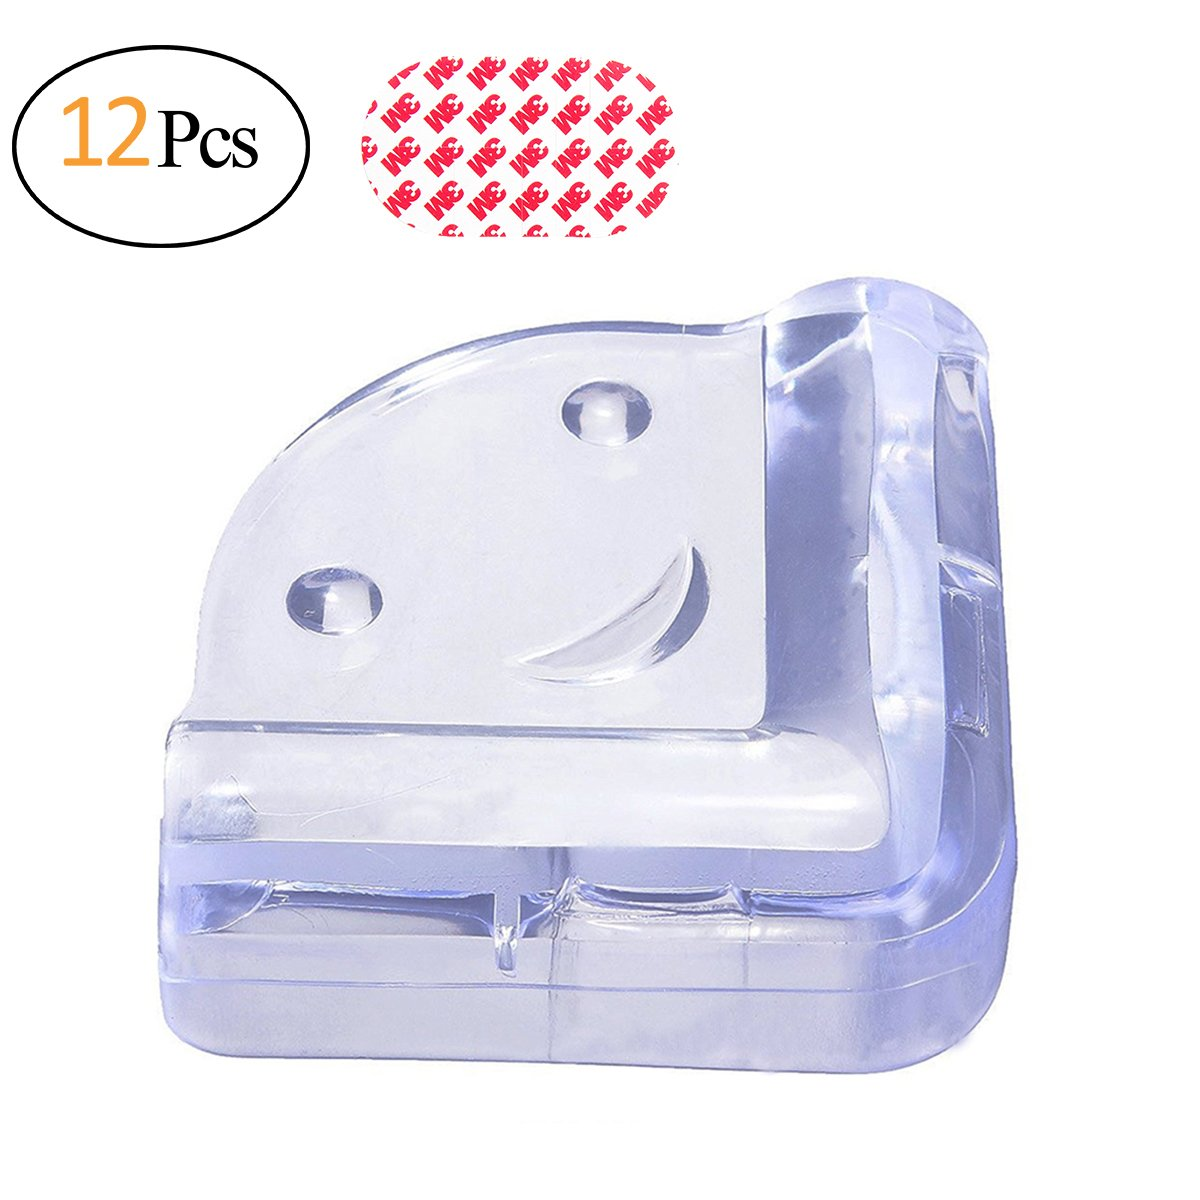 4X Clear Rubber Furniture Corner Edge Table Cushion Guard Protector Baby Safty